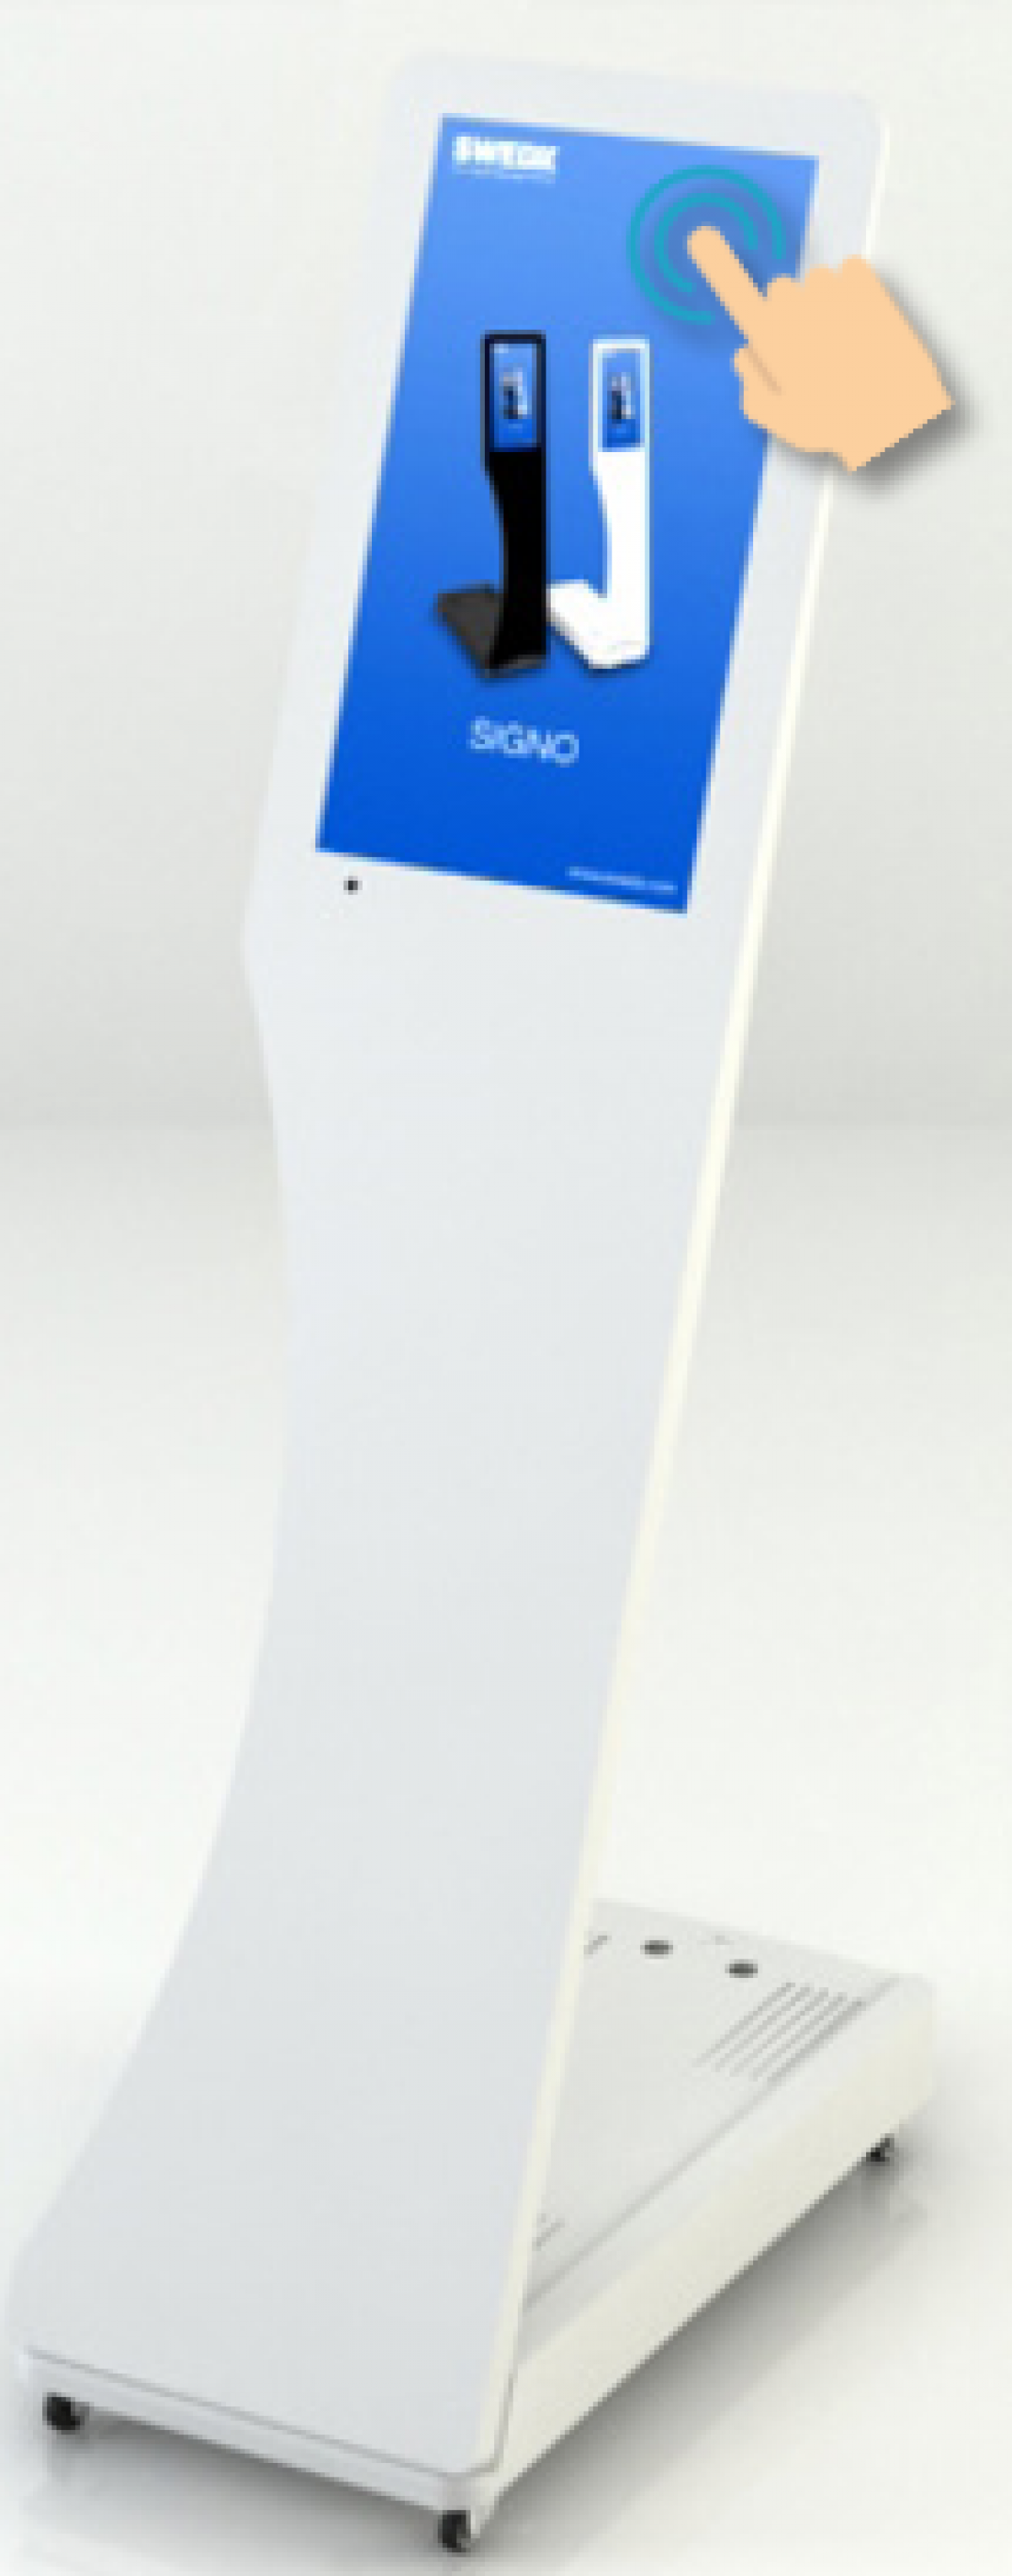 TOTEM SWEDX SERIE SIGNO - TOUCH 10 TOCCHI - SWSST156-A1